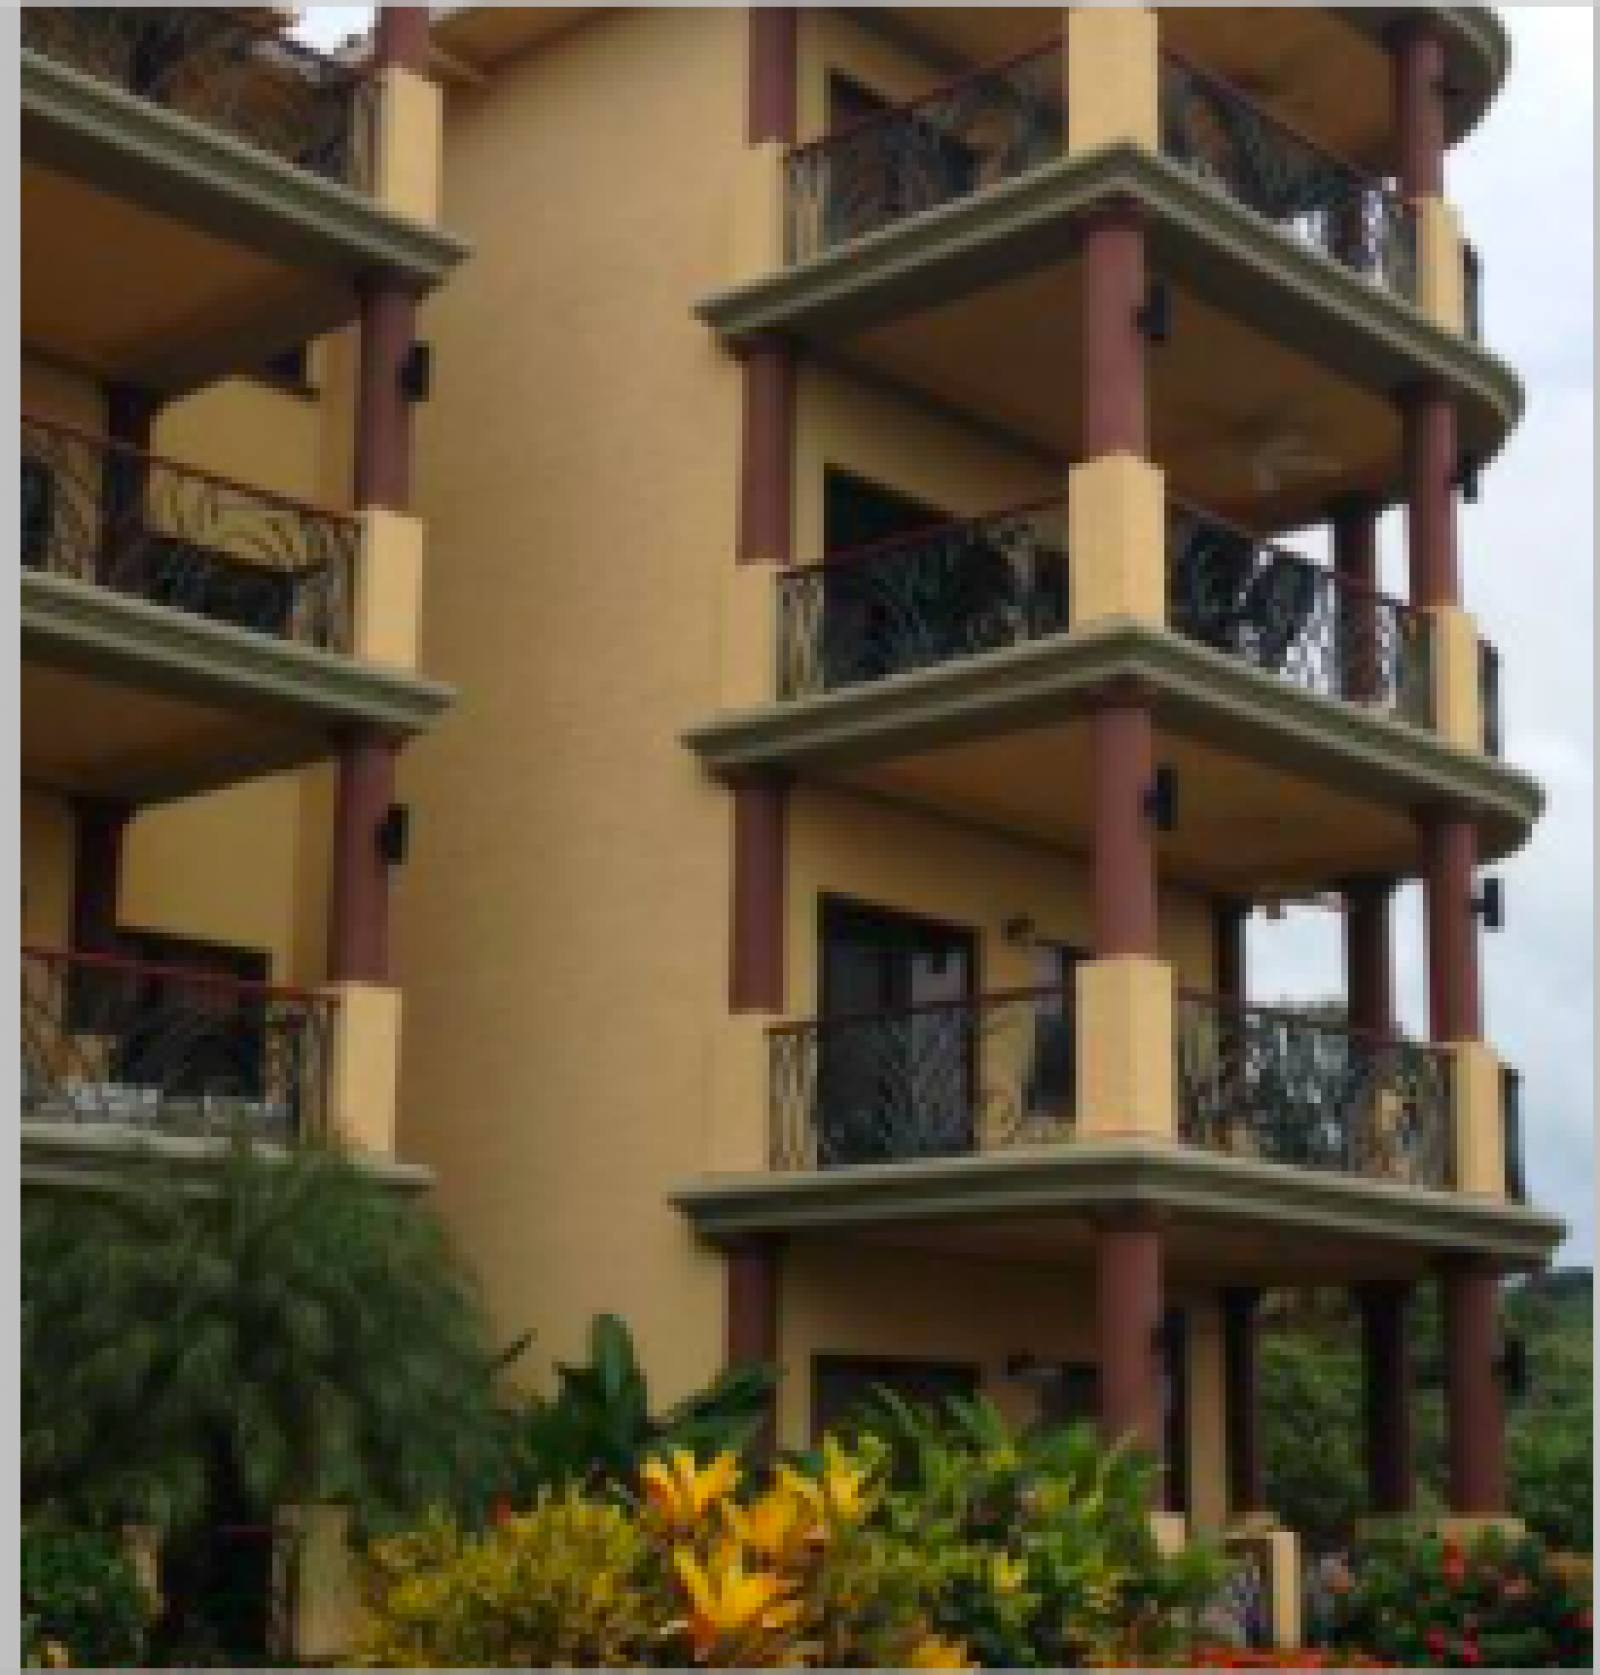 Just one of the well designed and maintained complexes of Pineapple Villas.